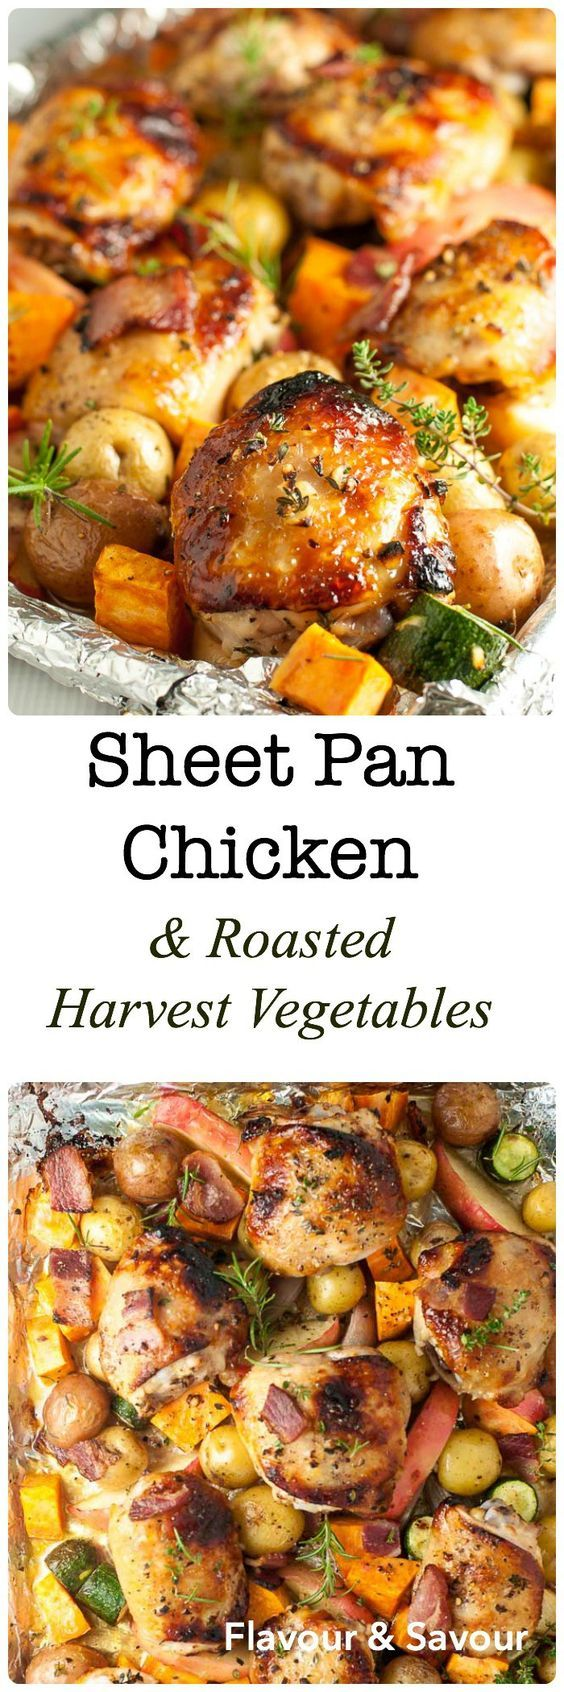 Bacon, apples and fresh herbs flavour this dinner of Sheet Pan Chicken and Roasted Harvest Vegetables. Crispy chicken and roasted vegetables make a complete meal, made in one pan, baked in just 30 minutes. |www.flavourandsavour.com